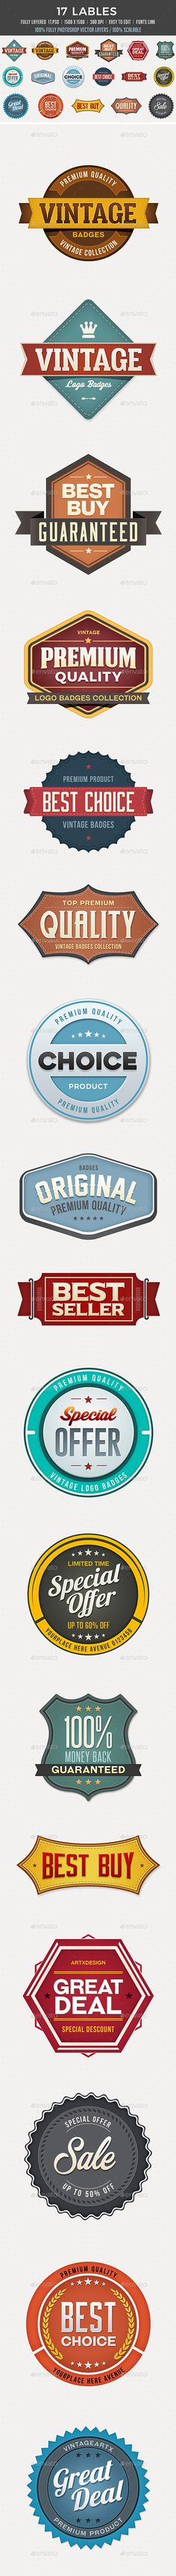 17 Badges 17 Vintage Badges / Anniversary / Logo Set  17 Fully Layered .PSDs  and 17 JPEG  1500×1500 pixels 300 dpi  100% Photoshop Vector layers  100% Resizable  Easy to Edit  Fonts link attached with main file  Please rate it!  BigNoodleTitling http://www.dafont.com/search.php?q=BigNoodleTitling Familiar Pro http://www.dafont.com/search.php?q=Familiar+Pro Bebas Neue http://www.dafont.com/search.php?q=Bebas+Neue Gobold http://www.dafont.com/search.php?q=Gobold Vacer Serif…